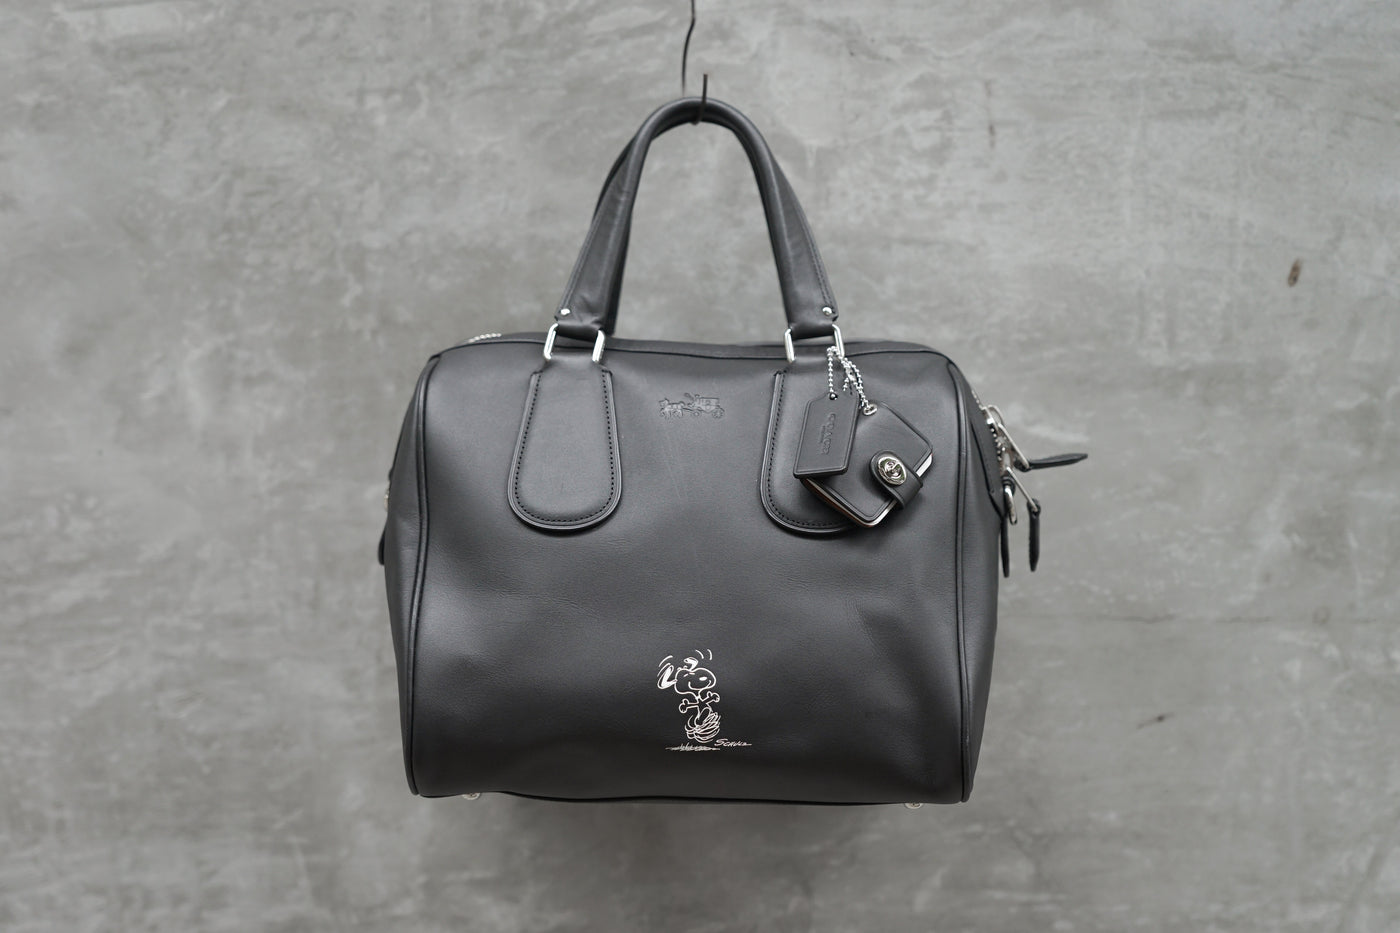 COACH x PEANUTS SURREY Limited Edition Satchel In Leather